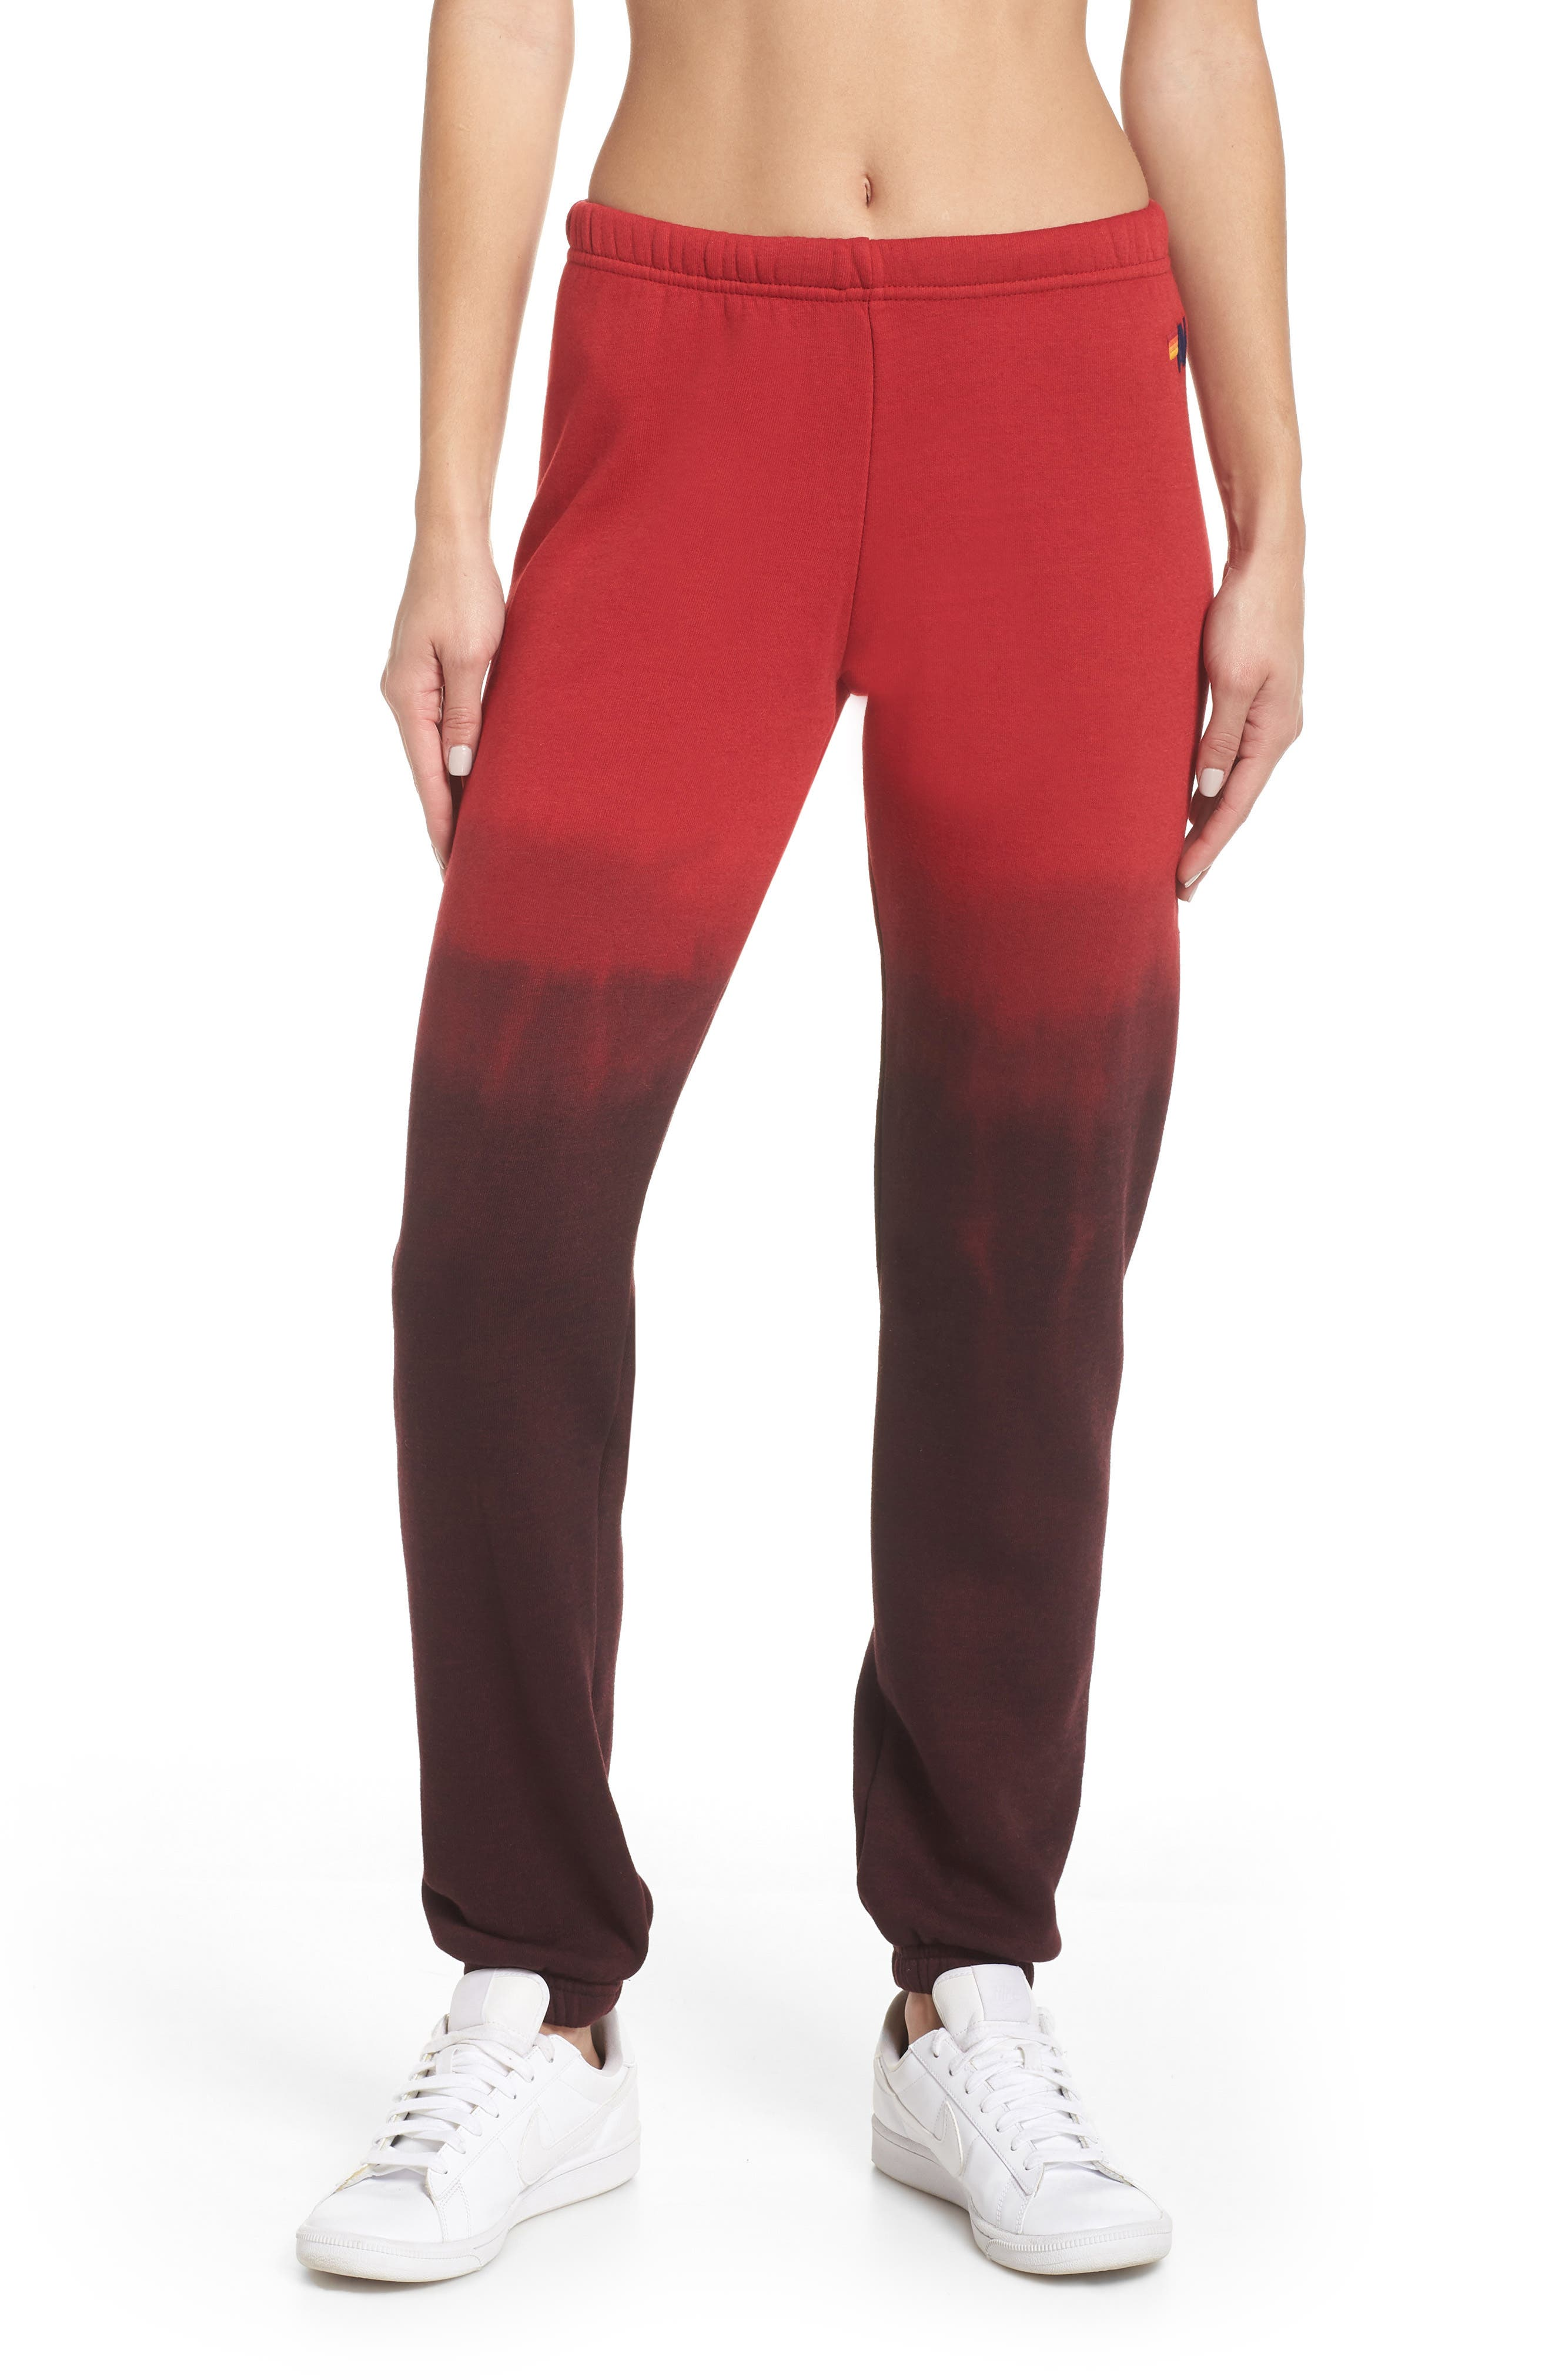 AVIATOR NATION Faded Sweatpants, Main, color, RED / CHARCOAL